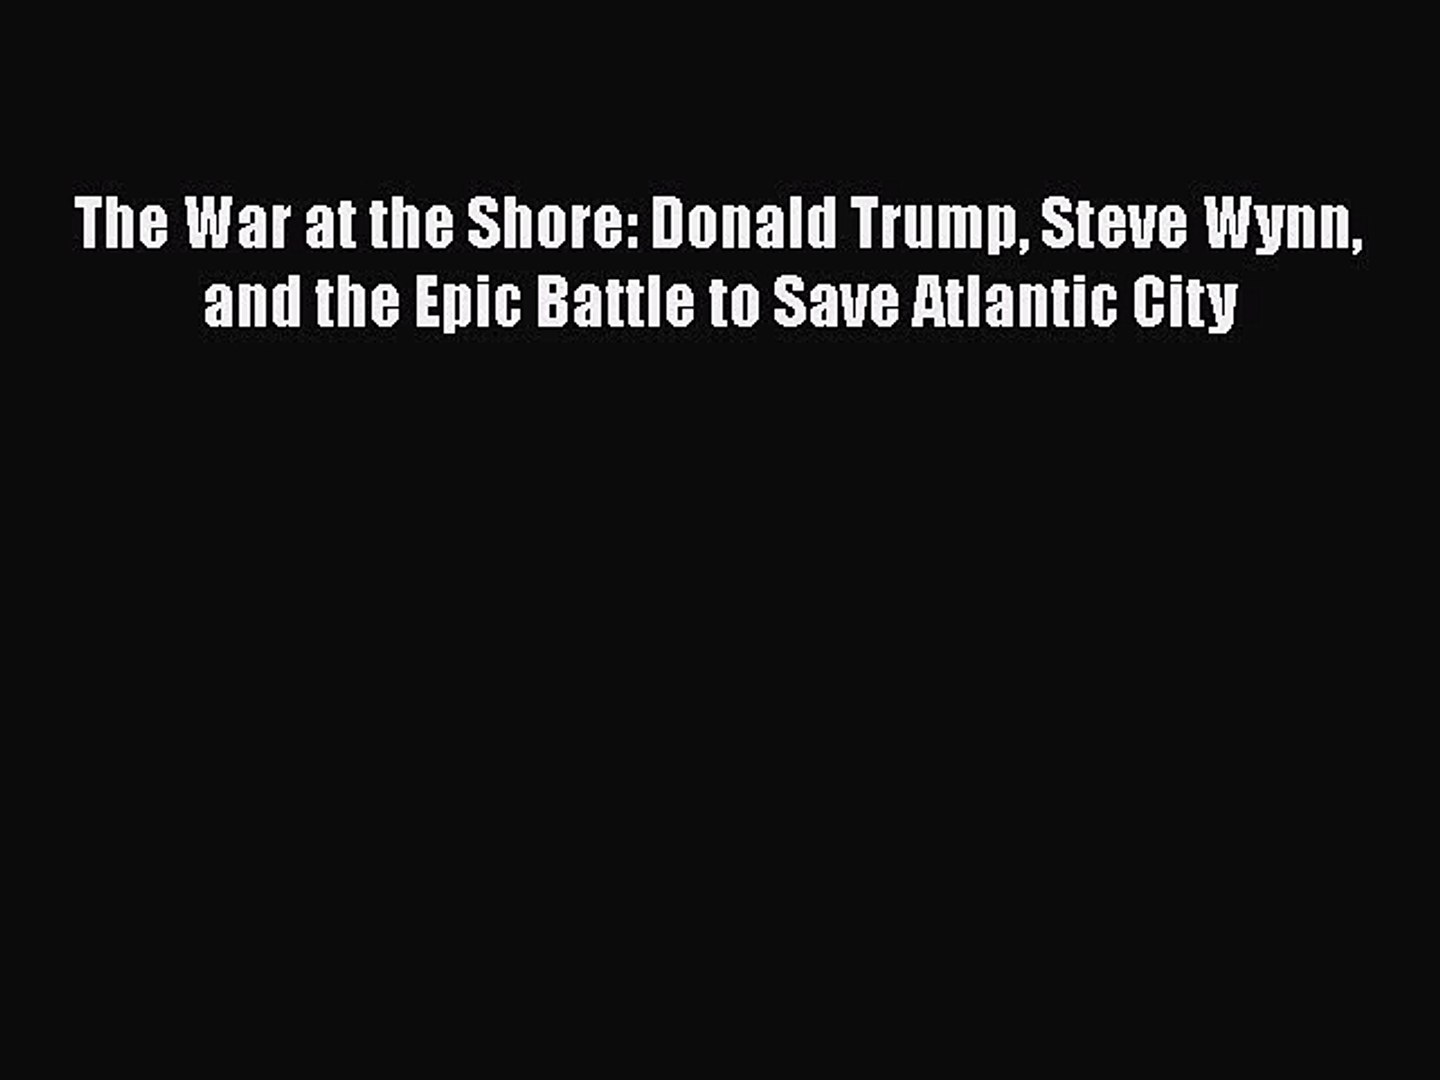 Download The War at the Shore: Donald Trump Steve Wynn and the Epic Battle to Save Atlantic